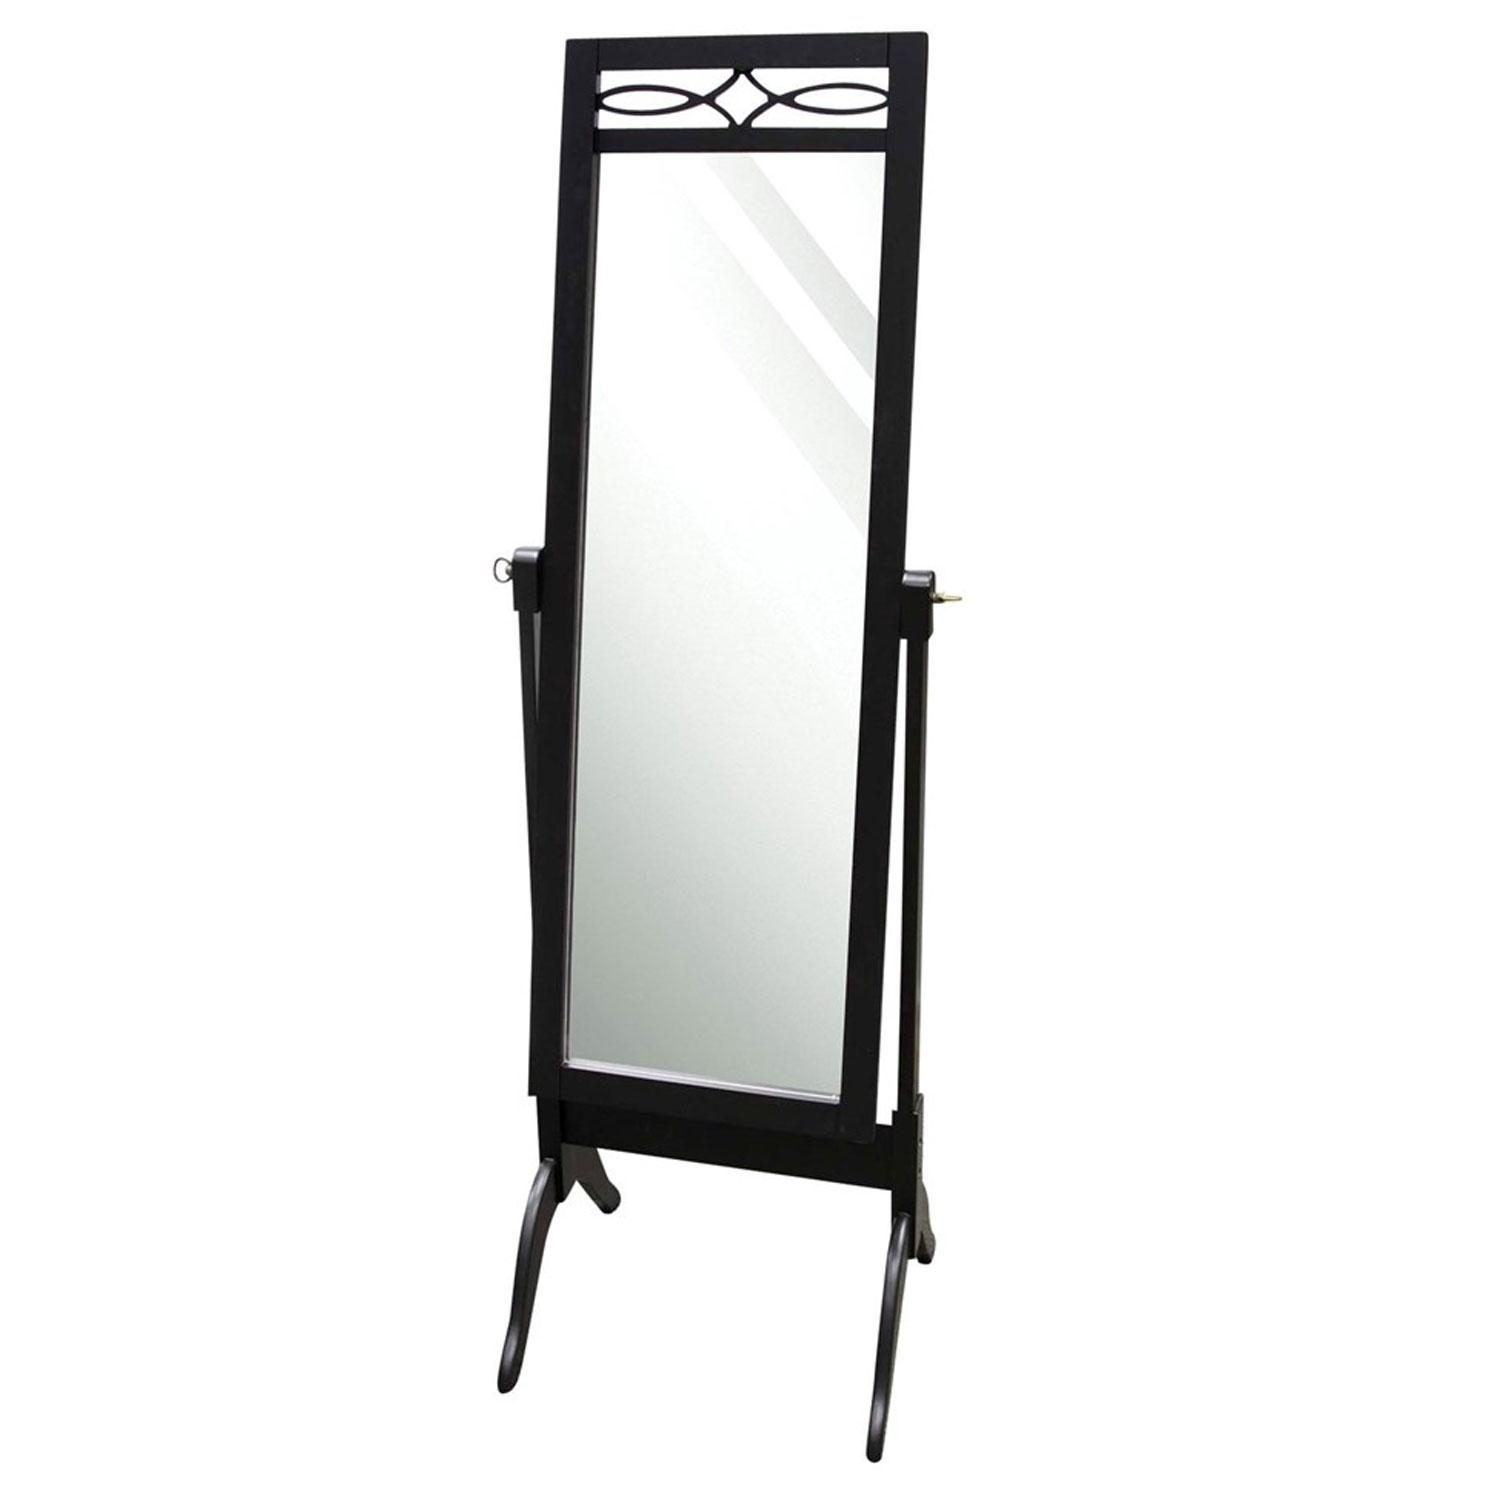 Stylecraft Mi12155 Cheval Mirror | Hope Home Furnishings And Flooring In Cheval Mirror (Image 19 of 20)